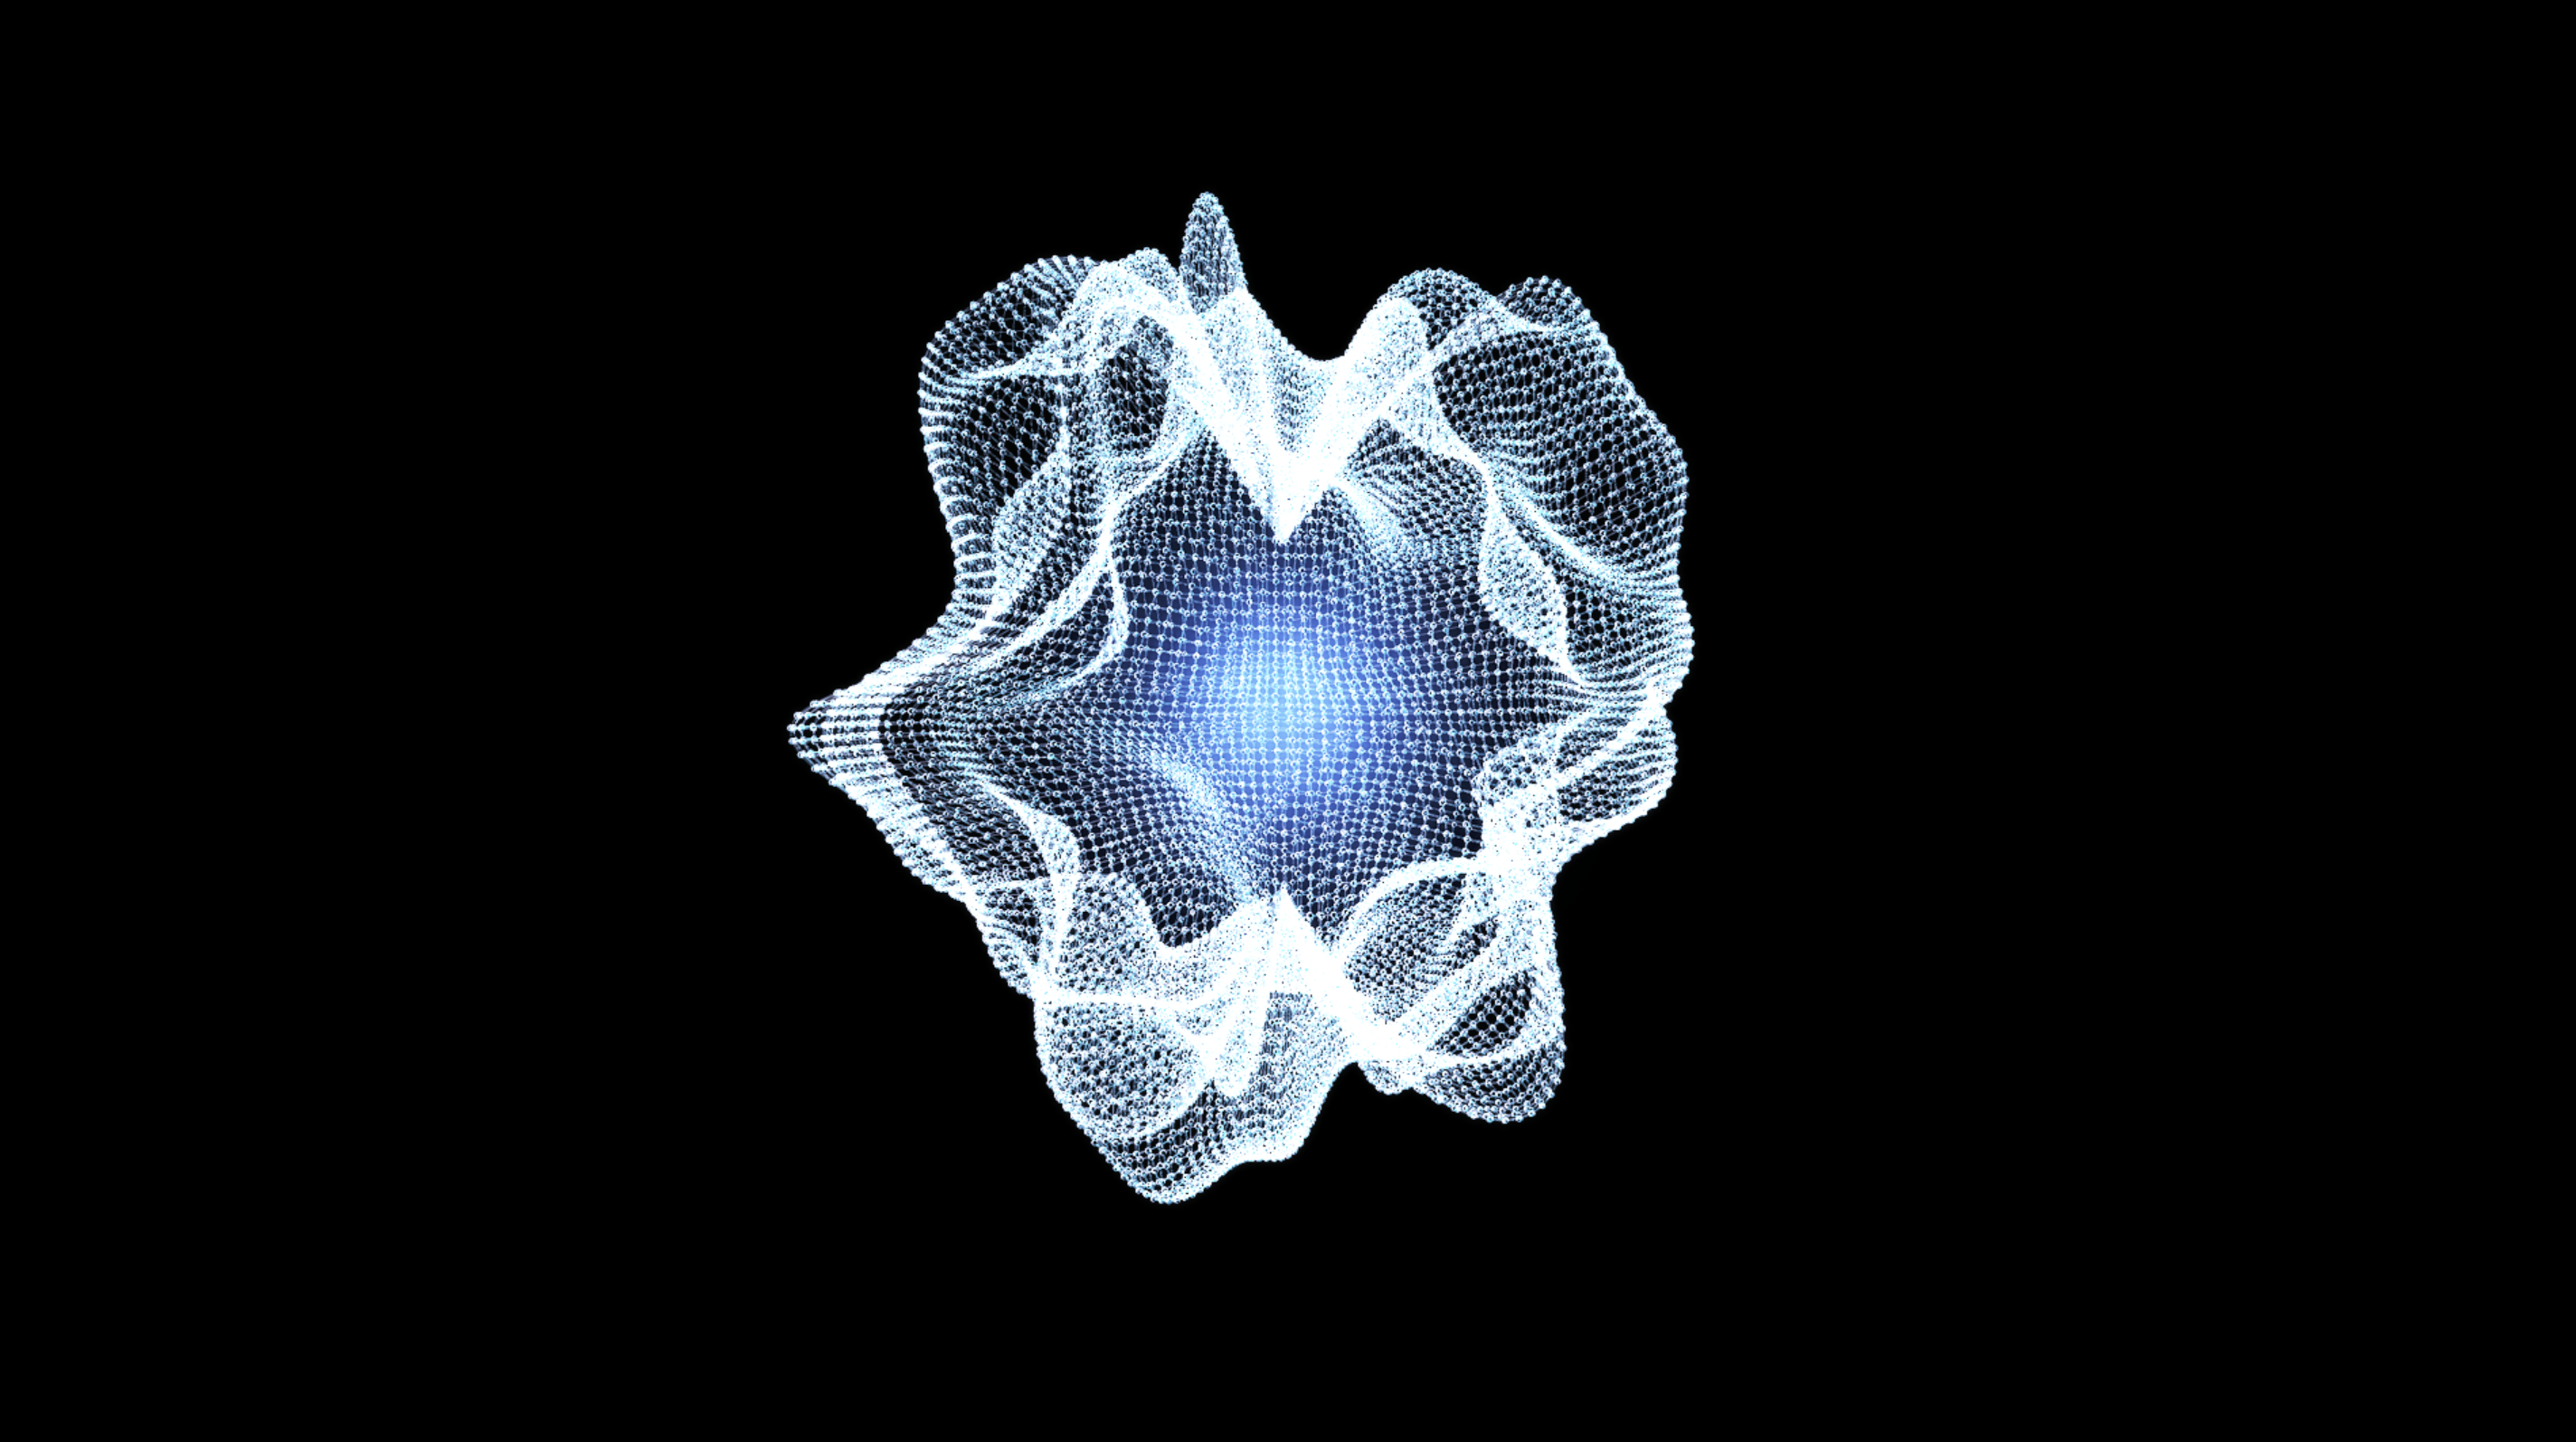 VJ concept series – abstract mesh